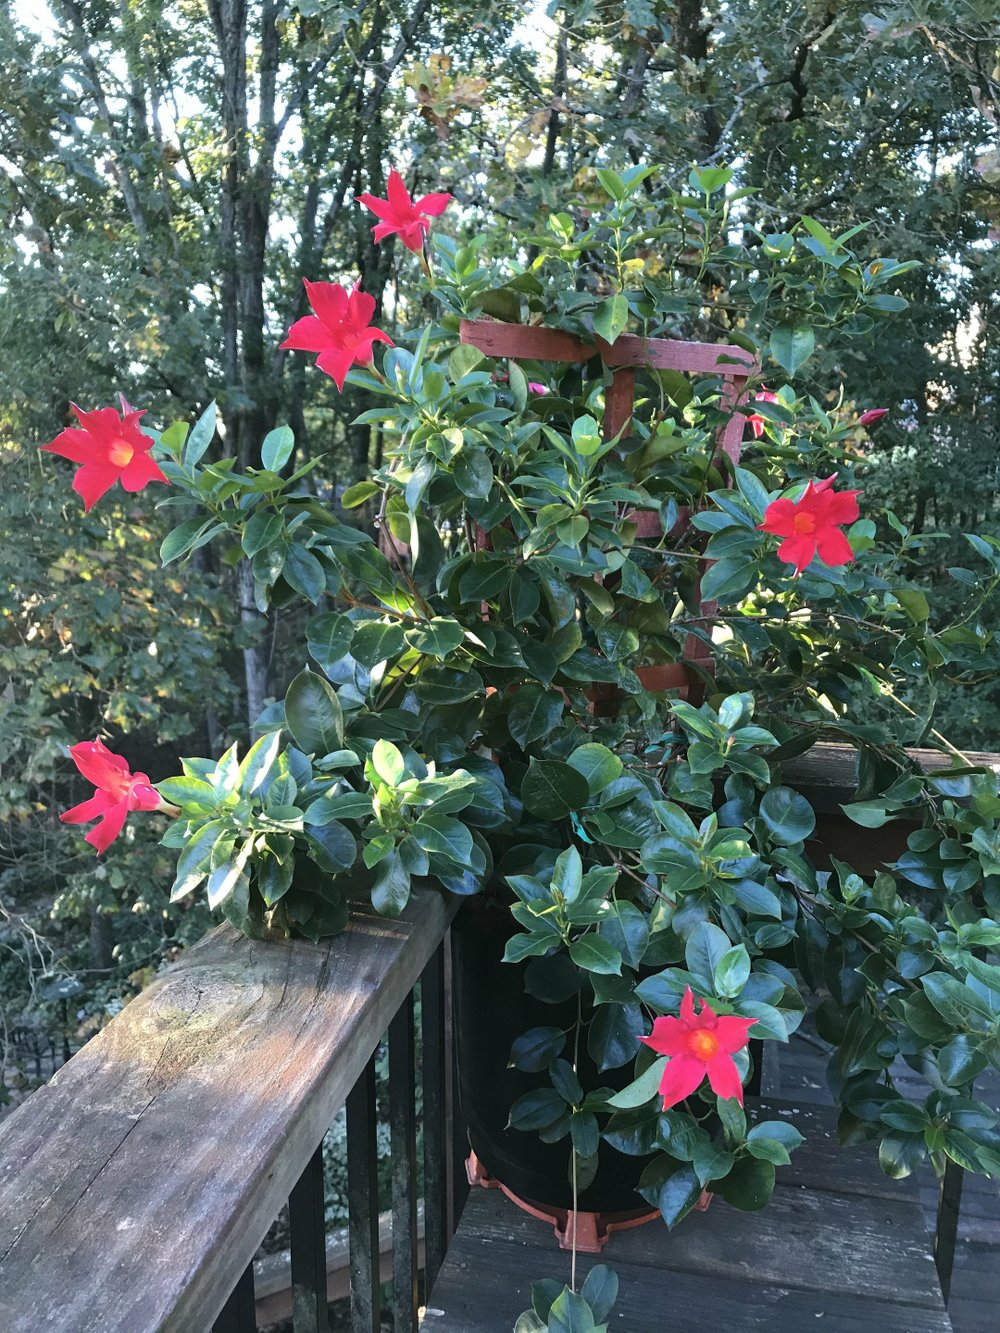 This lovely tropical flowering mandeville will not survive winter outdoors, but with care it can be saved for next year. (Special to the Democrat-Gazette via Janet B. Carson)